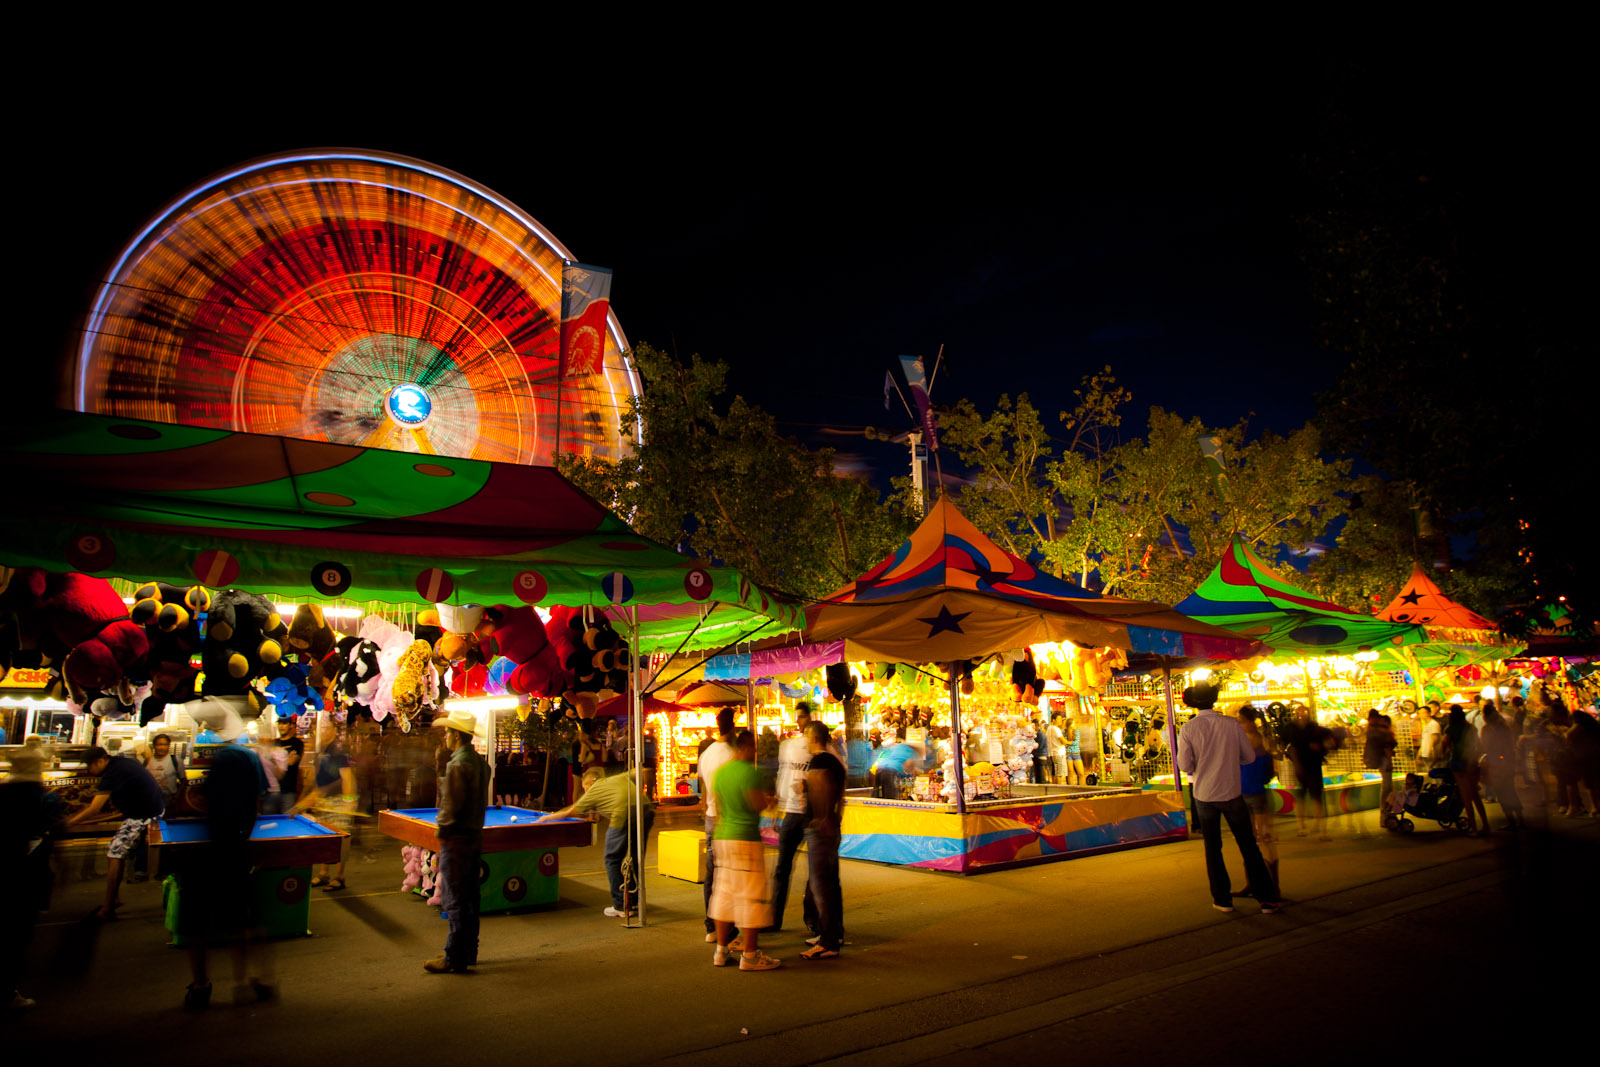 fairground at night essay We have been providing custom writing services for over 7 years we guarantee you 100% confidence, plagiarism free and high quality essays on a 24/7 basis.